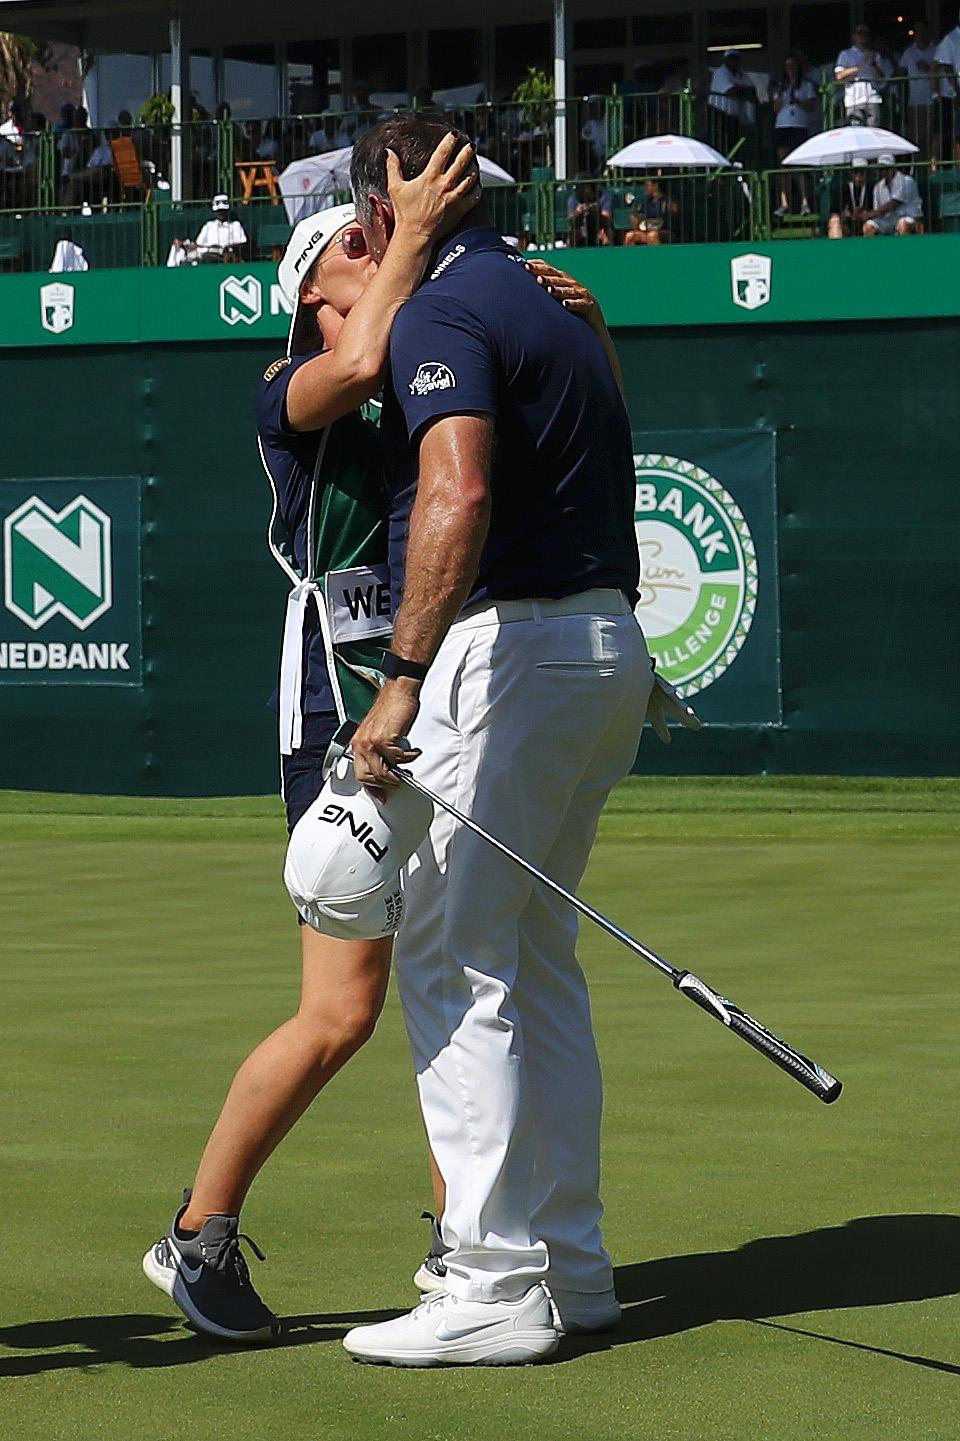 Lee Westwood planted a kiss on his caddie after winning the Nedbank Challenge